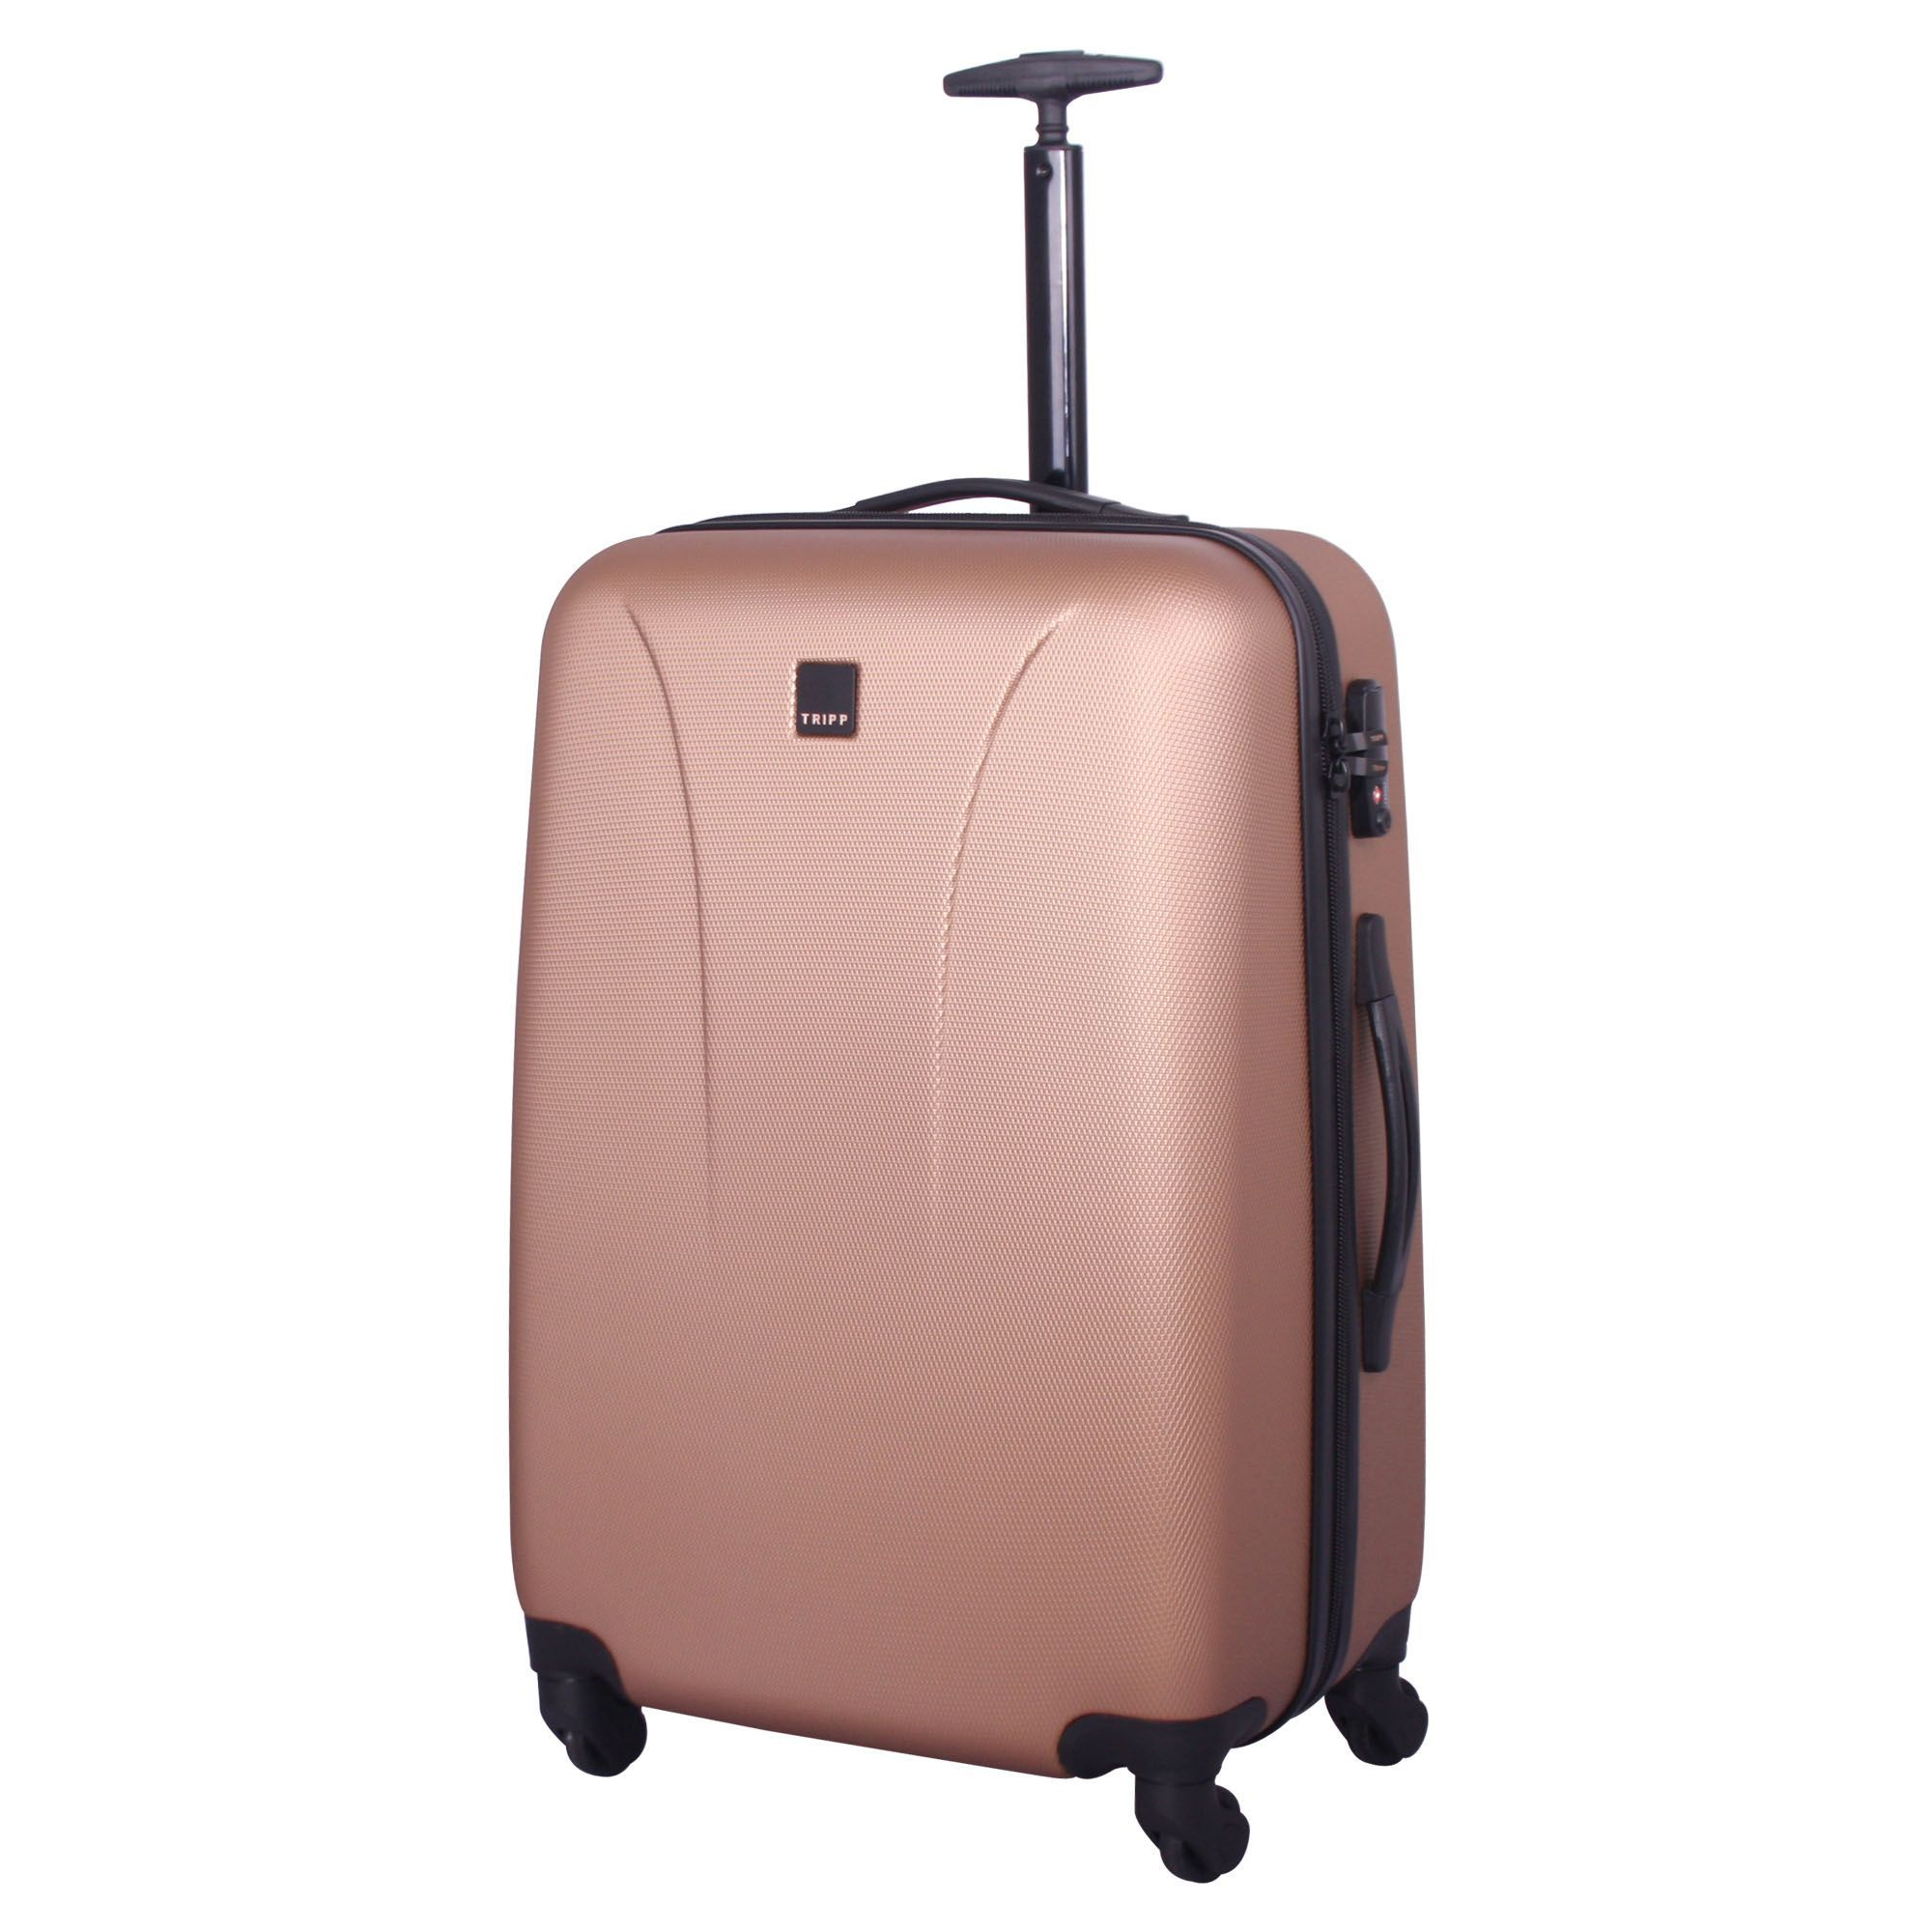 Tripp rose gold 'Lite' 4 wheel medium suitcase - Hard Suitcases ...